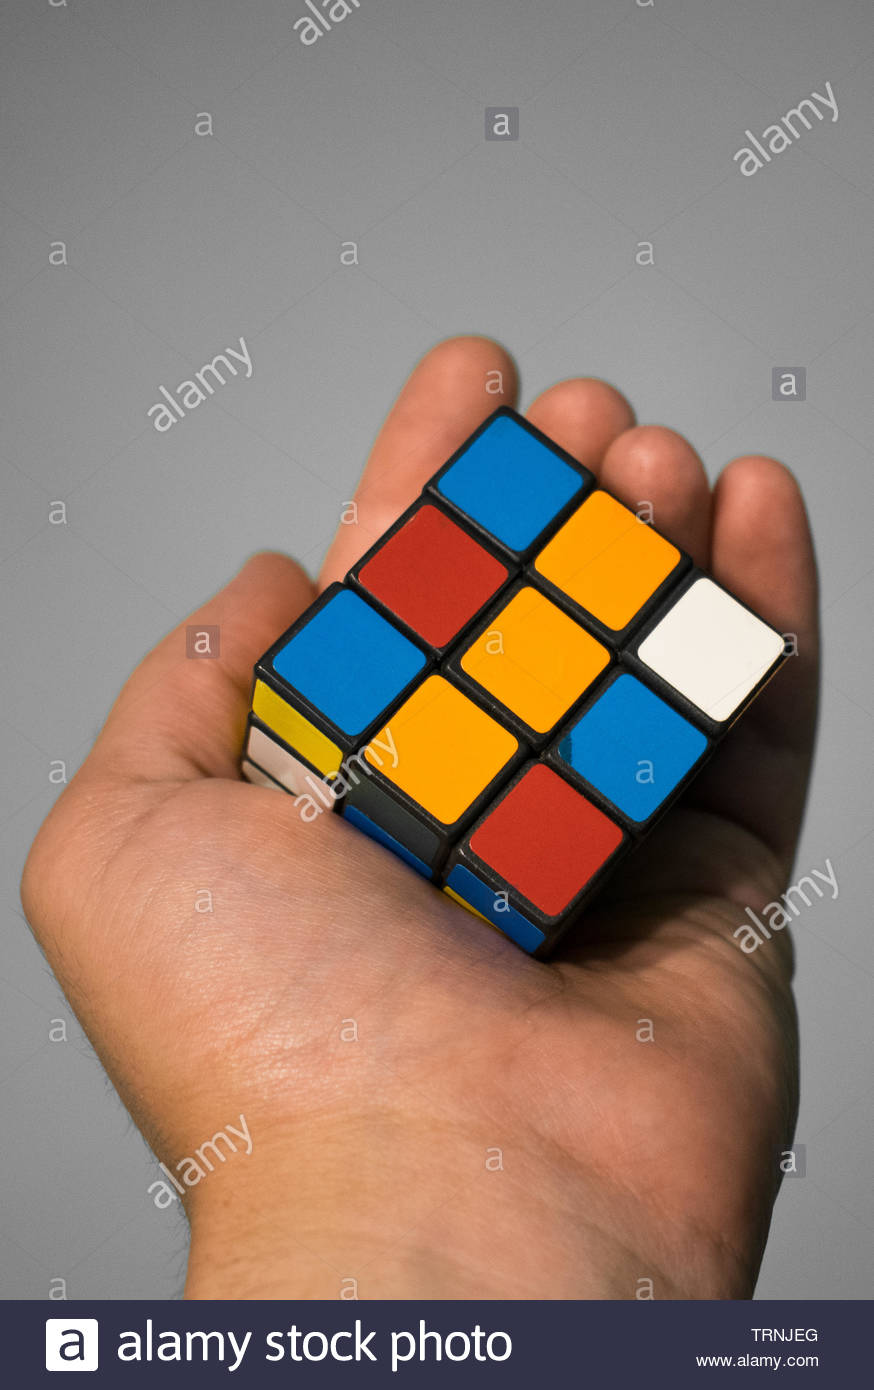 Rubber cube held in hand. - Stock Image